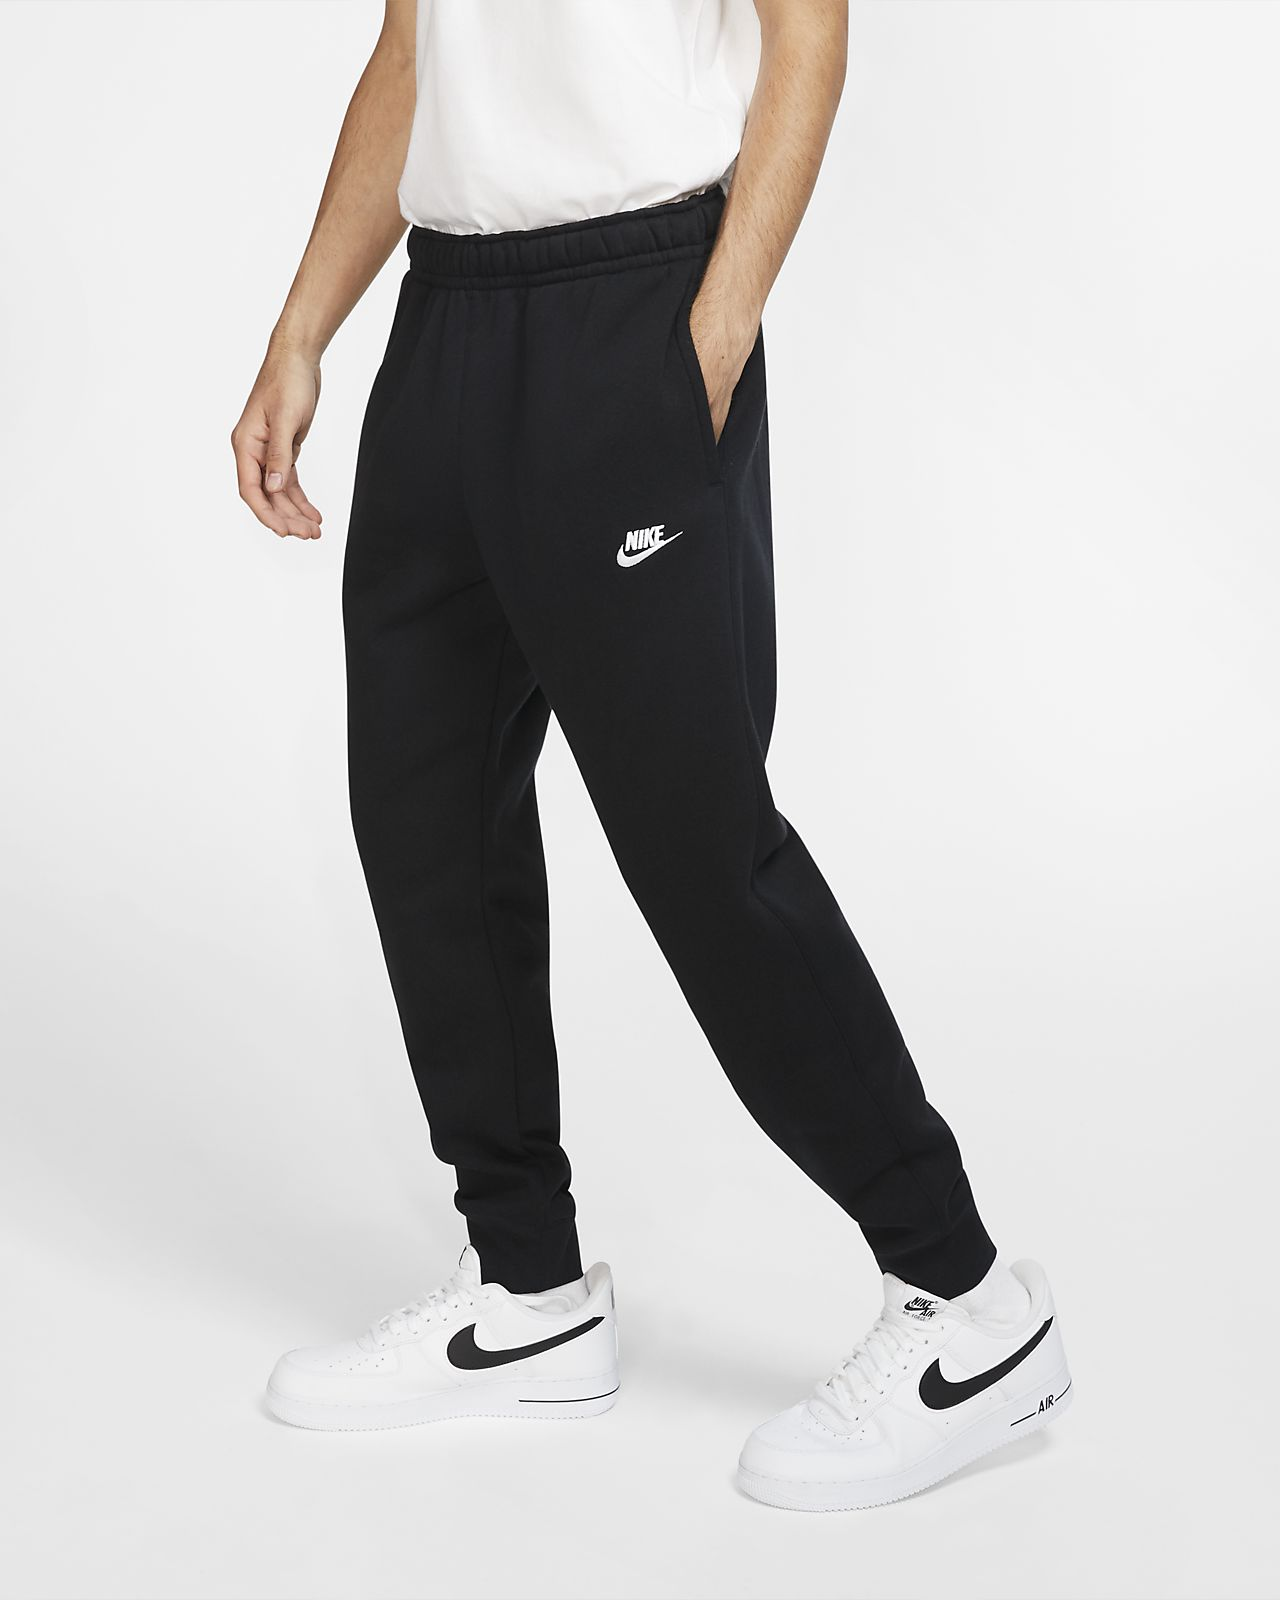 pantalon de survetement homme nike